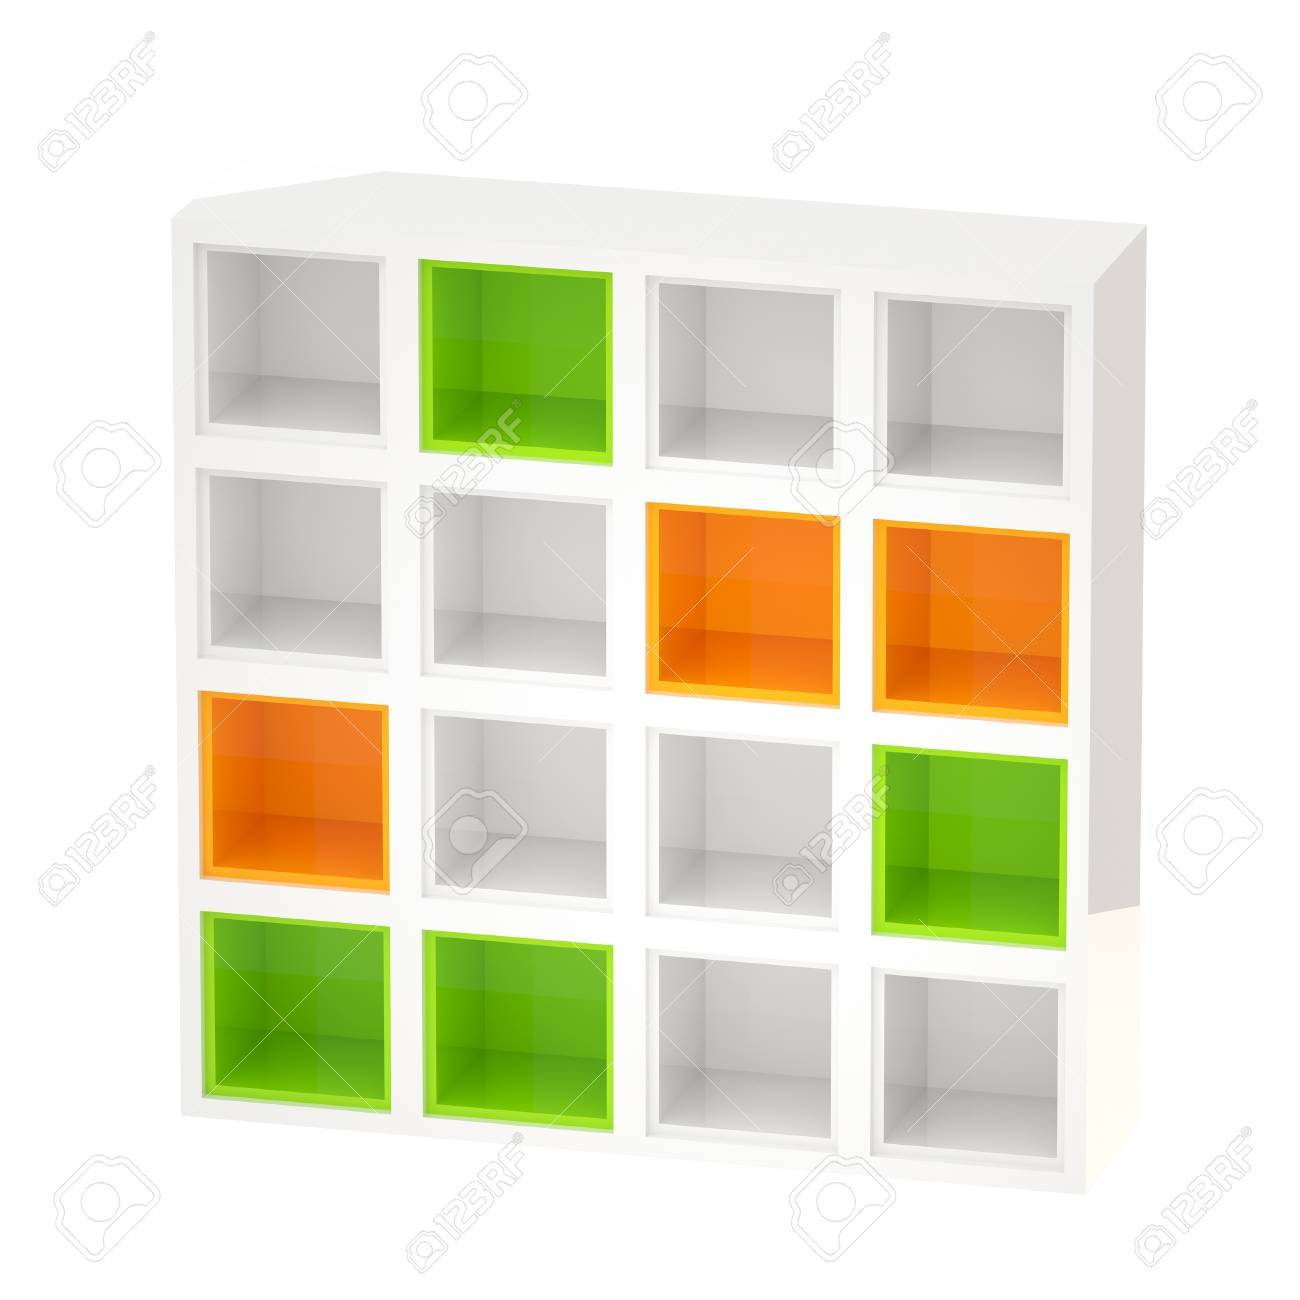 stock photo white glossy bookshelves colored cells isolated - Colored Bookshelves